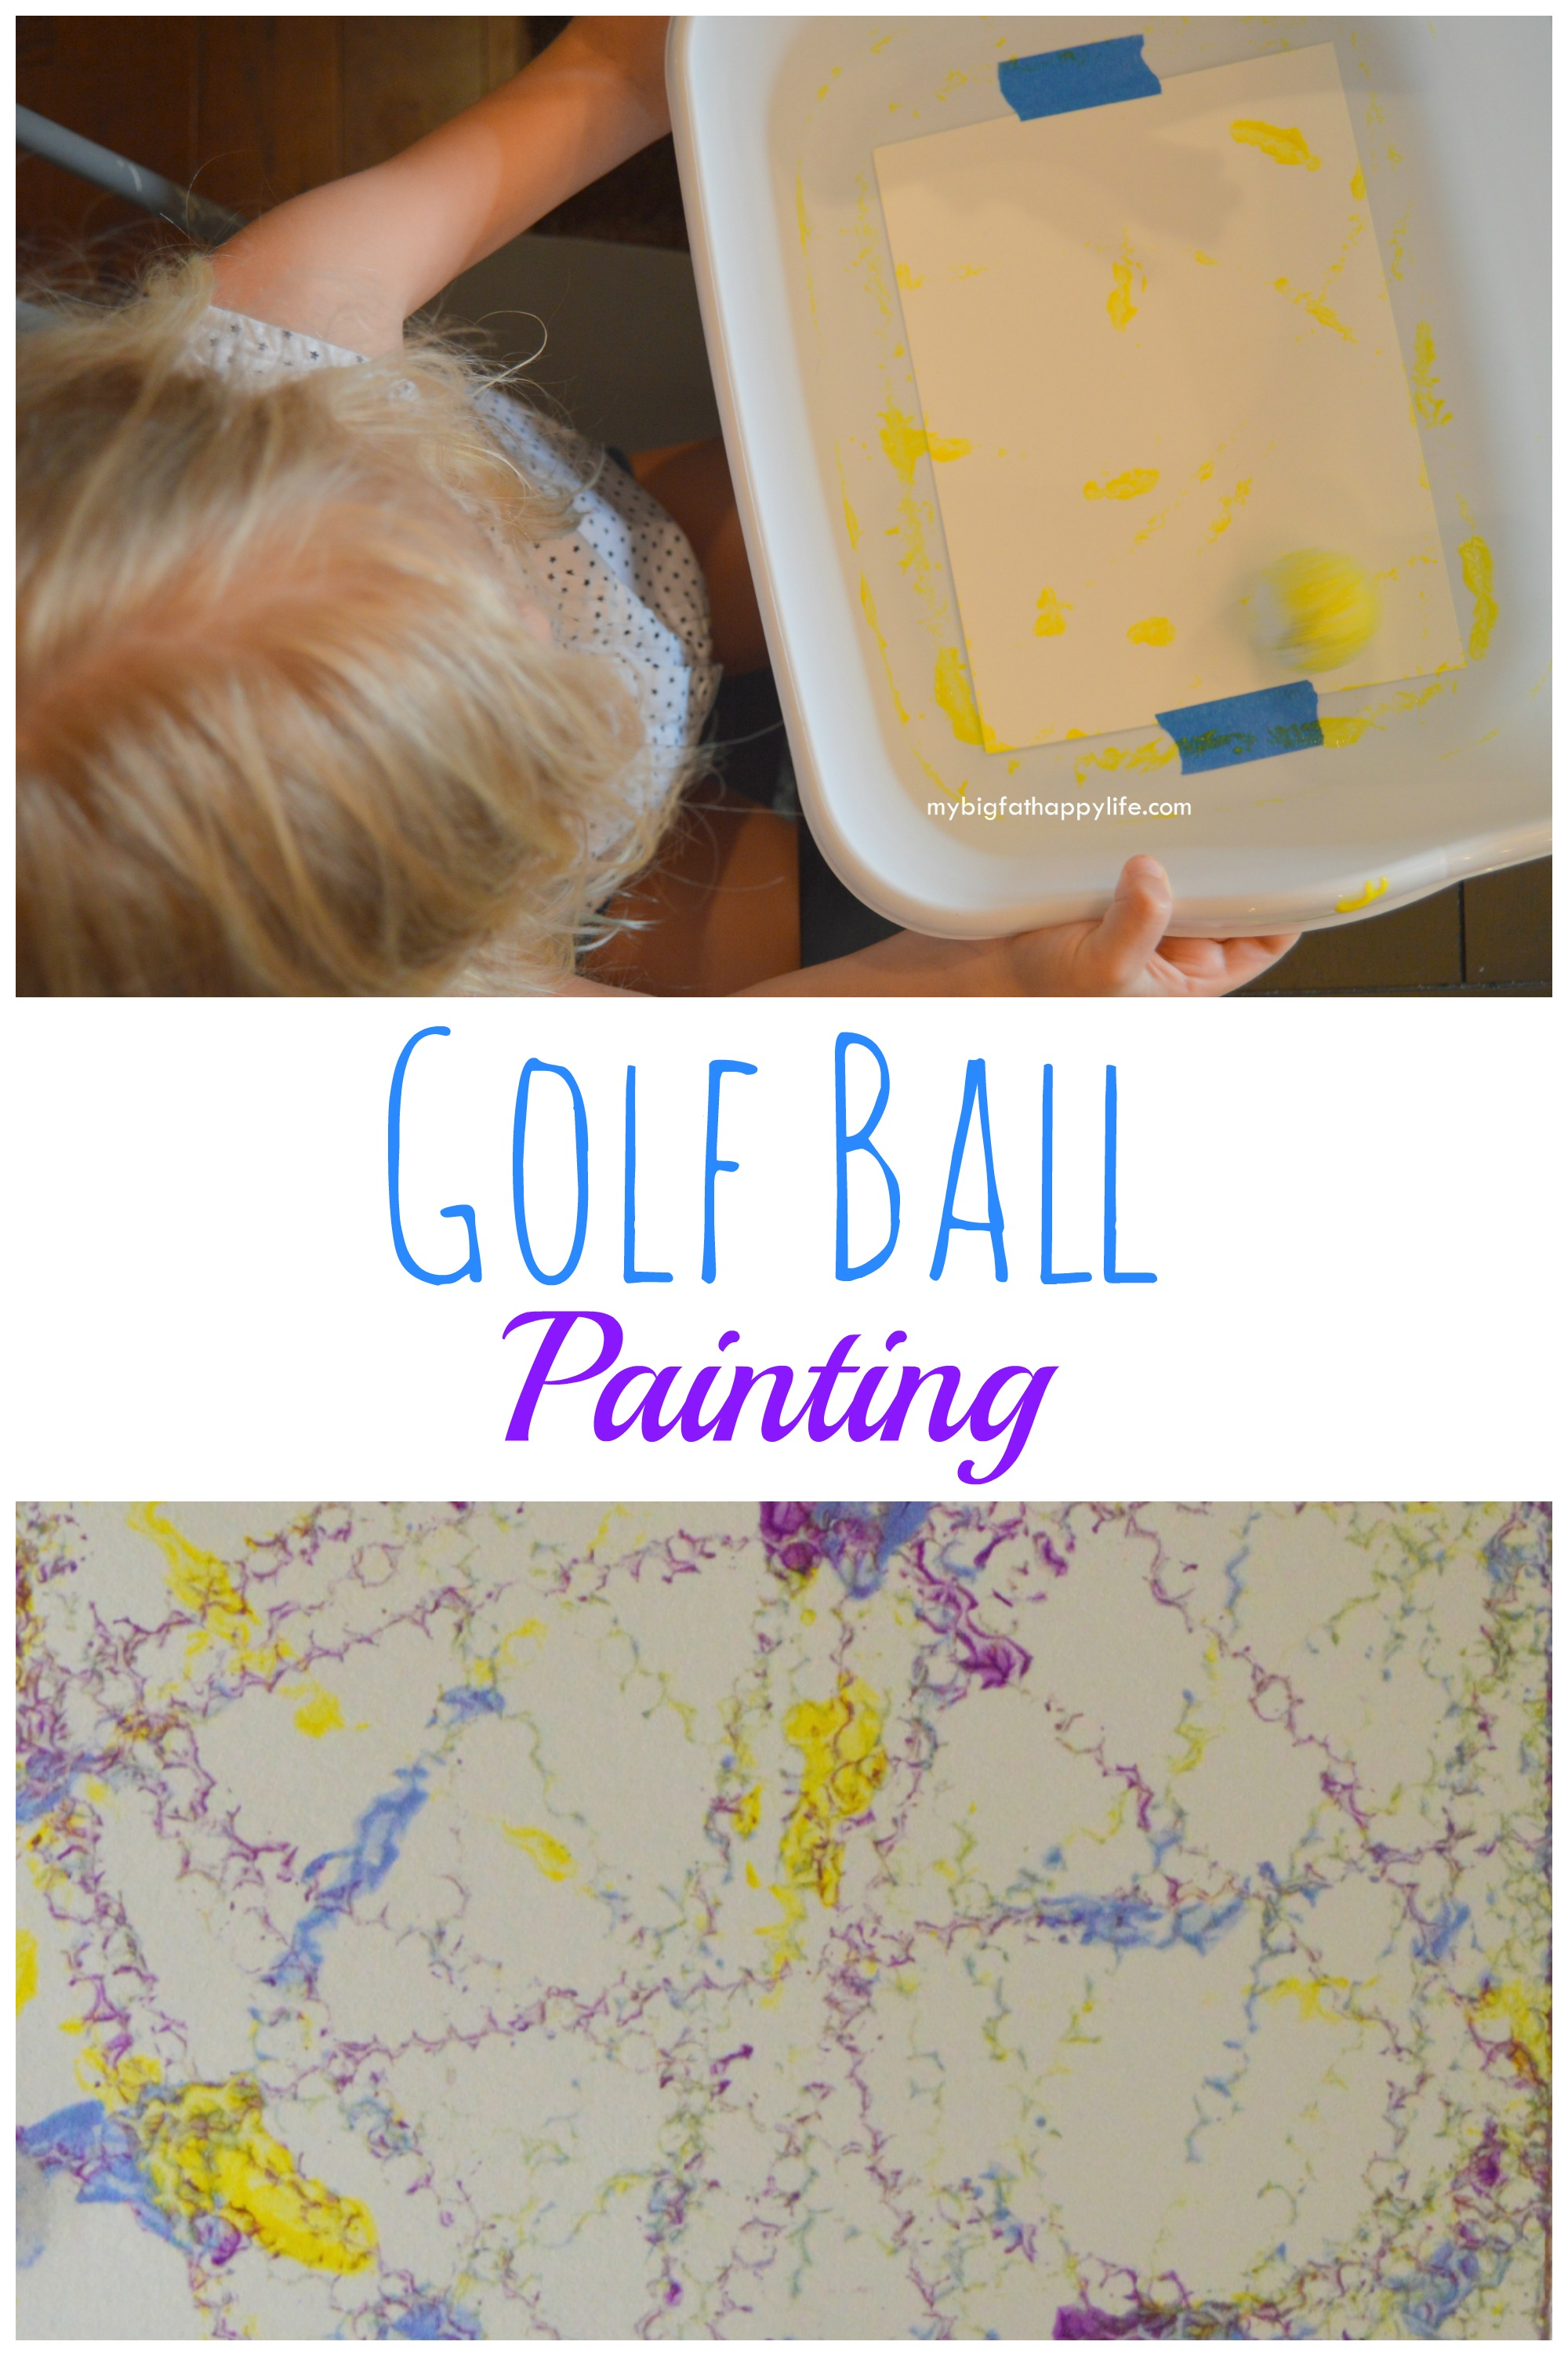 Superieur Golf Ball Painting, Kids Arts And Crafts | Mybigfathappylife.com